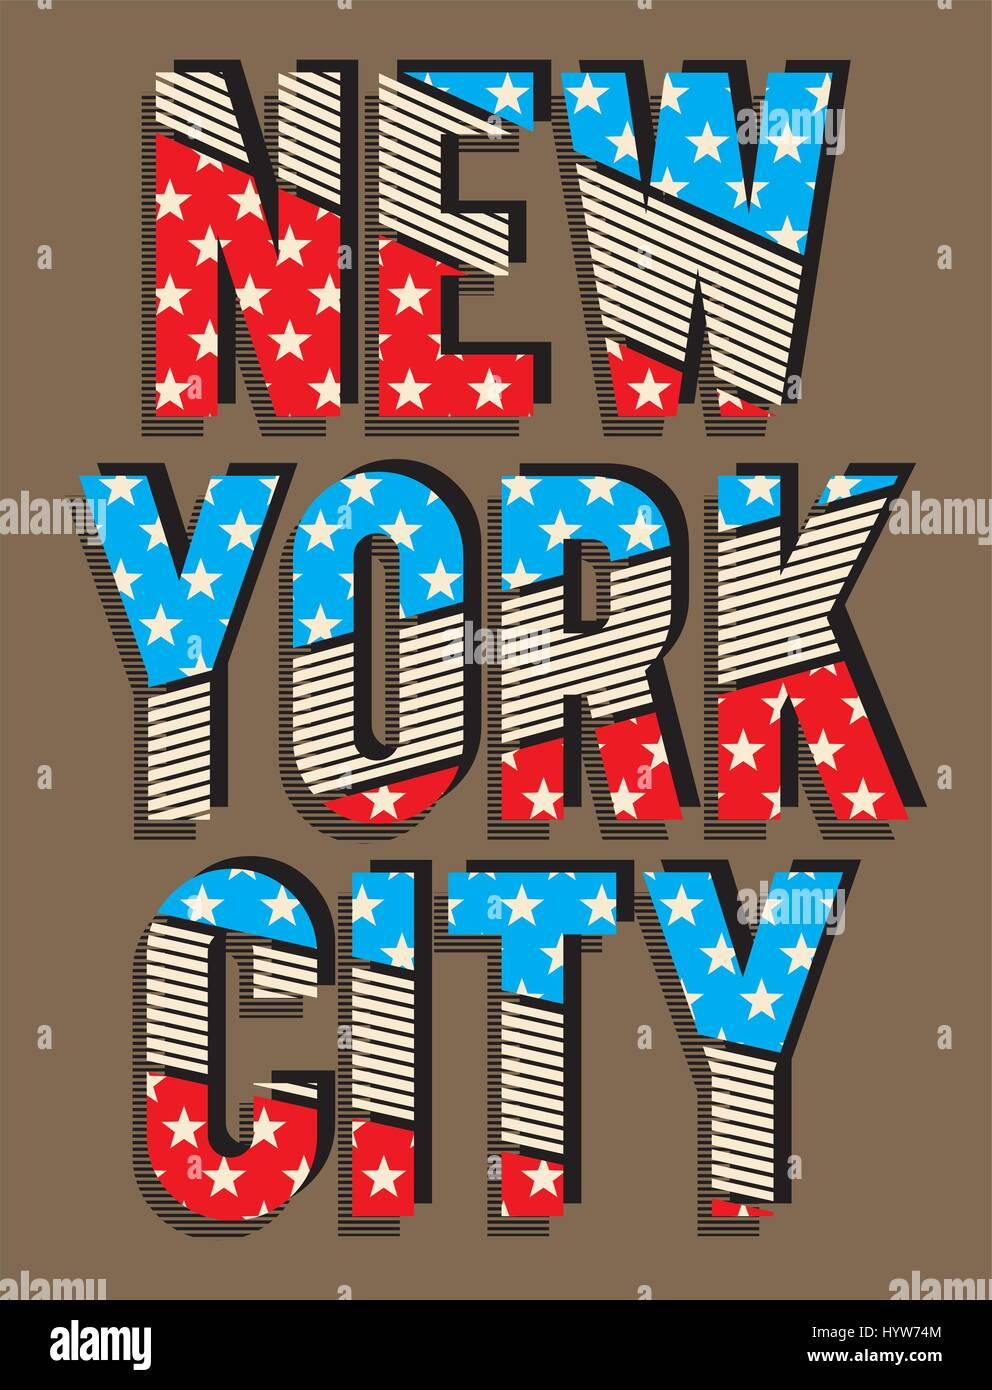 Design a t shirt nyc -  Retro New York Typography Design For T Shirt Poster Festival Vector Stock